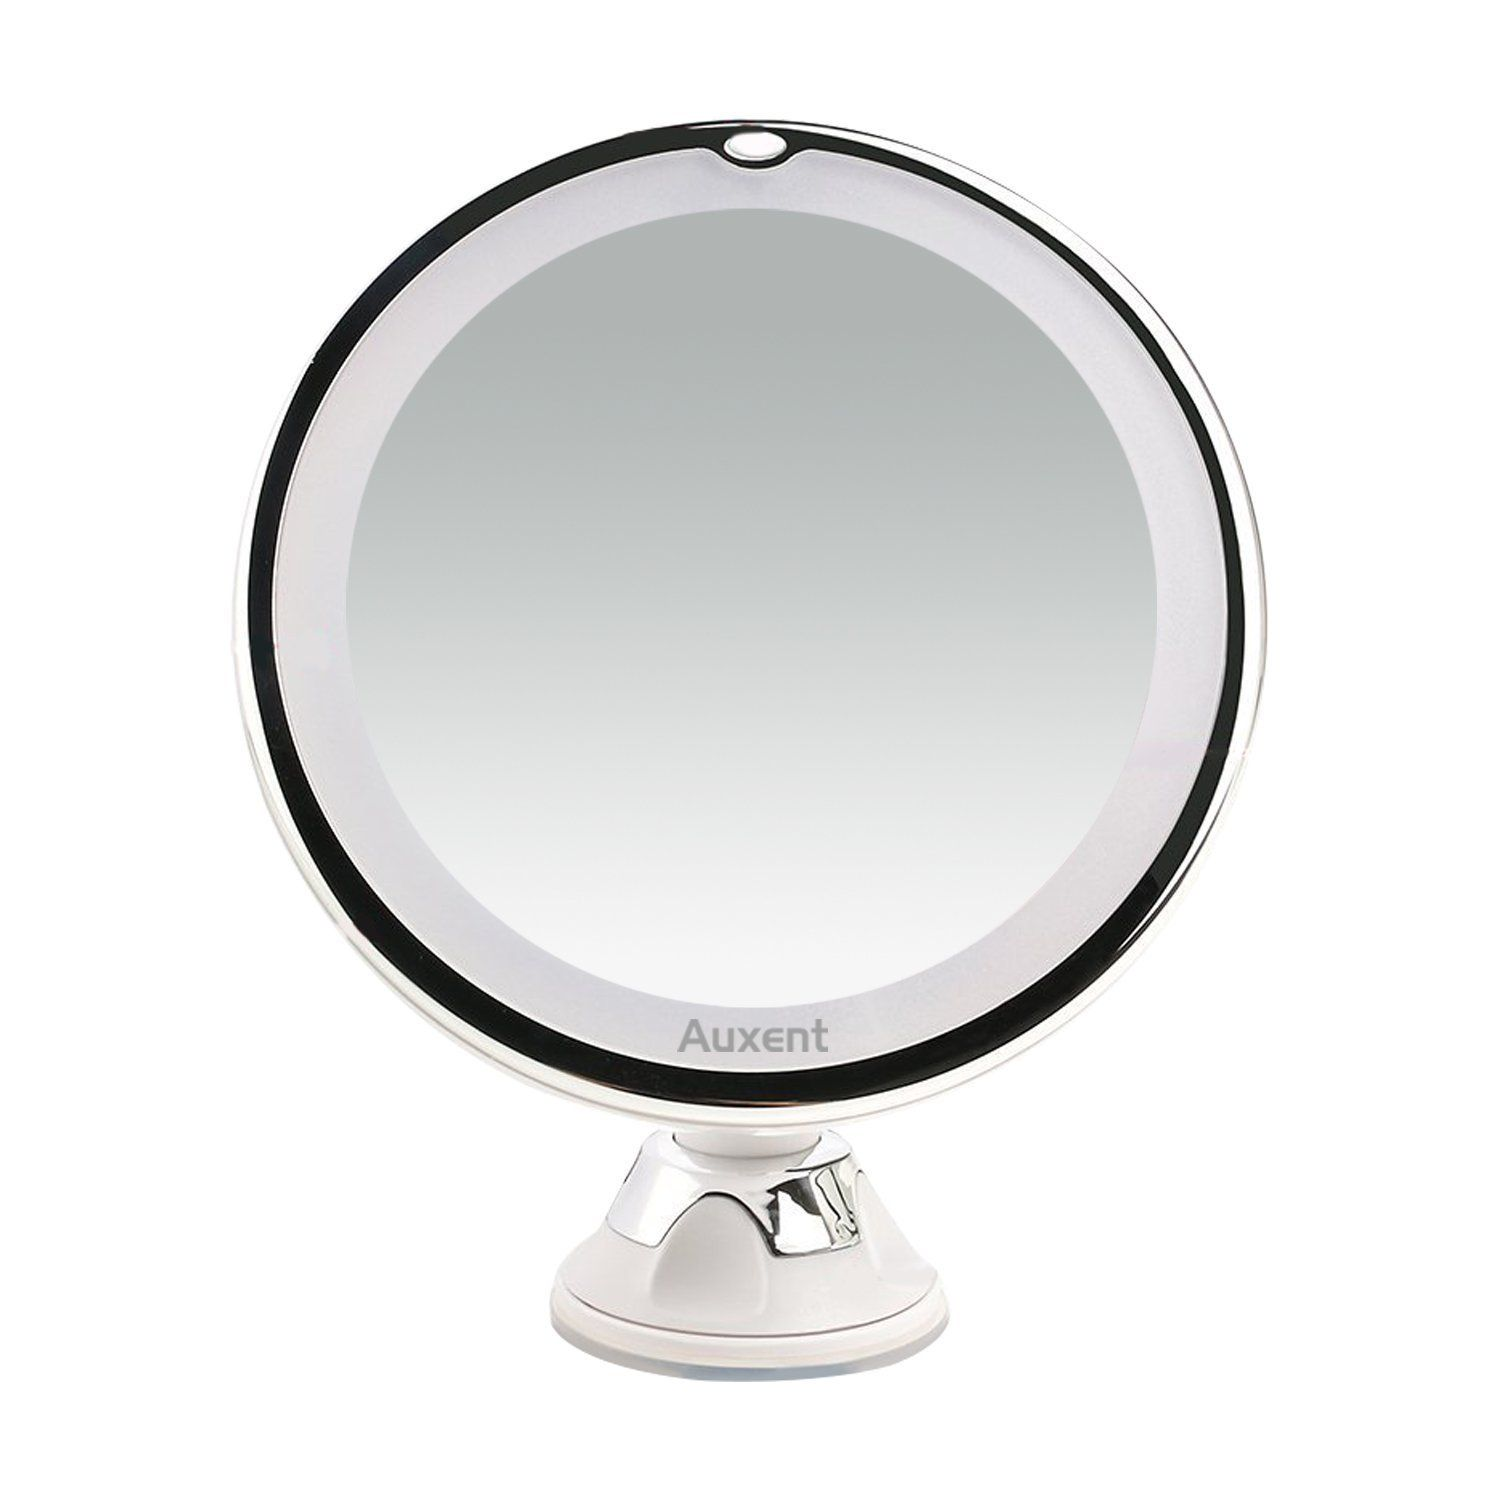 Auxent 10X Magnifying LED Lighted Makeup Mirror Vanity Cosmetic ...